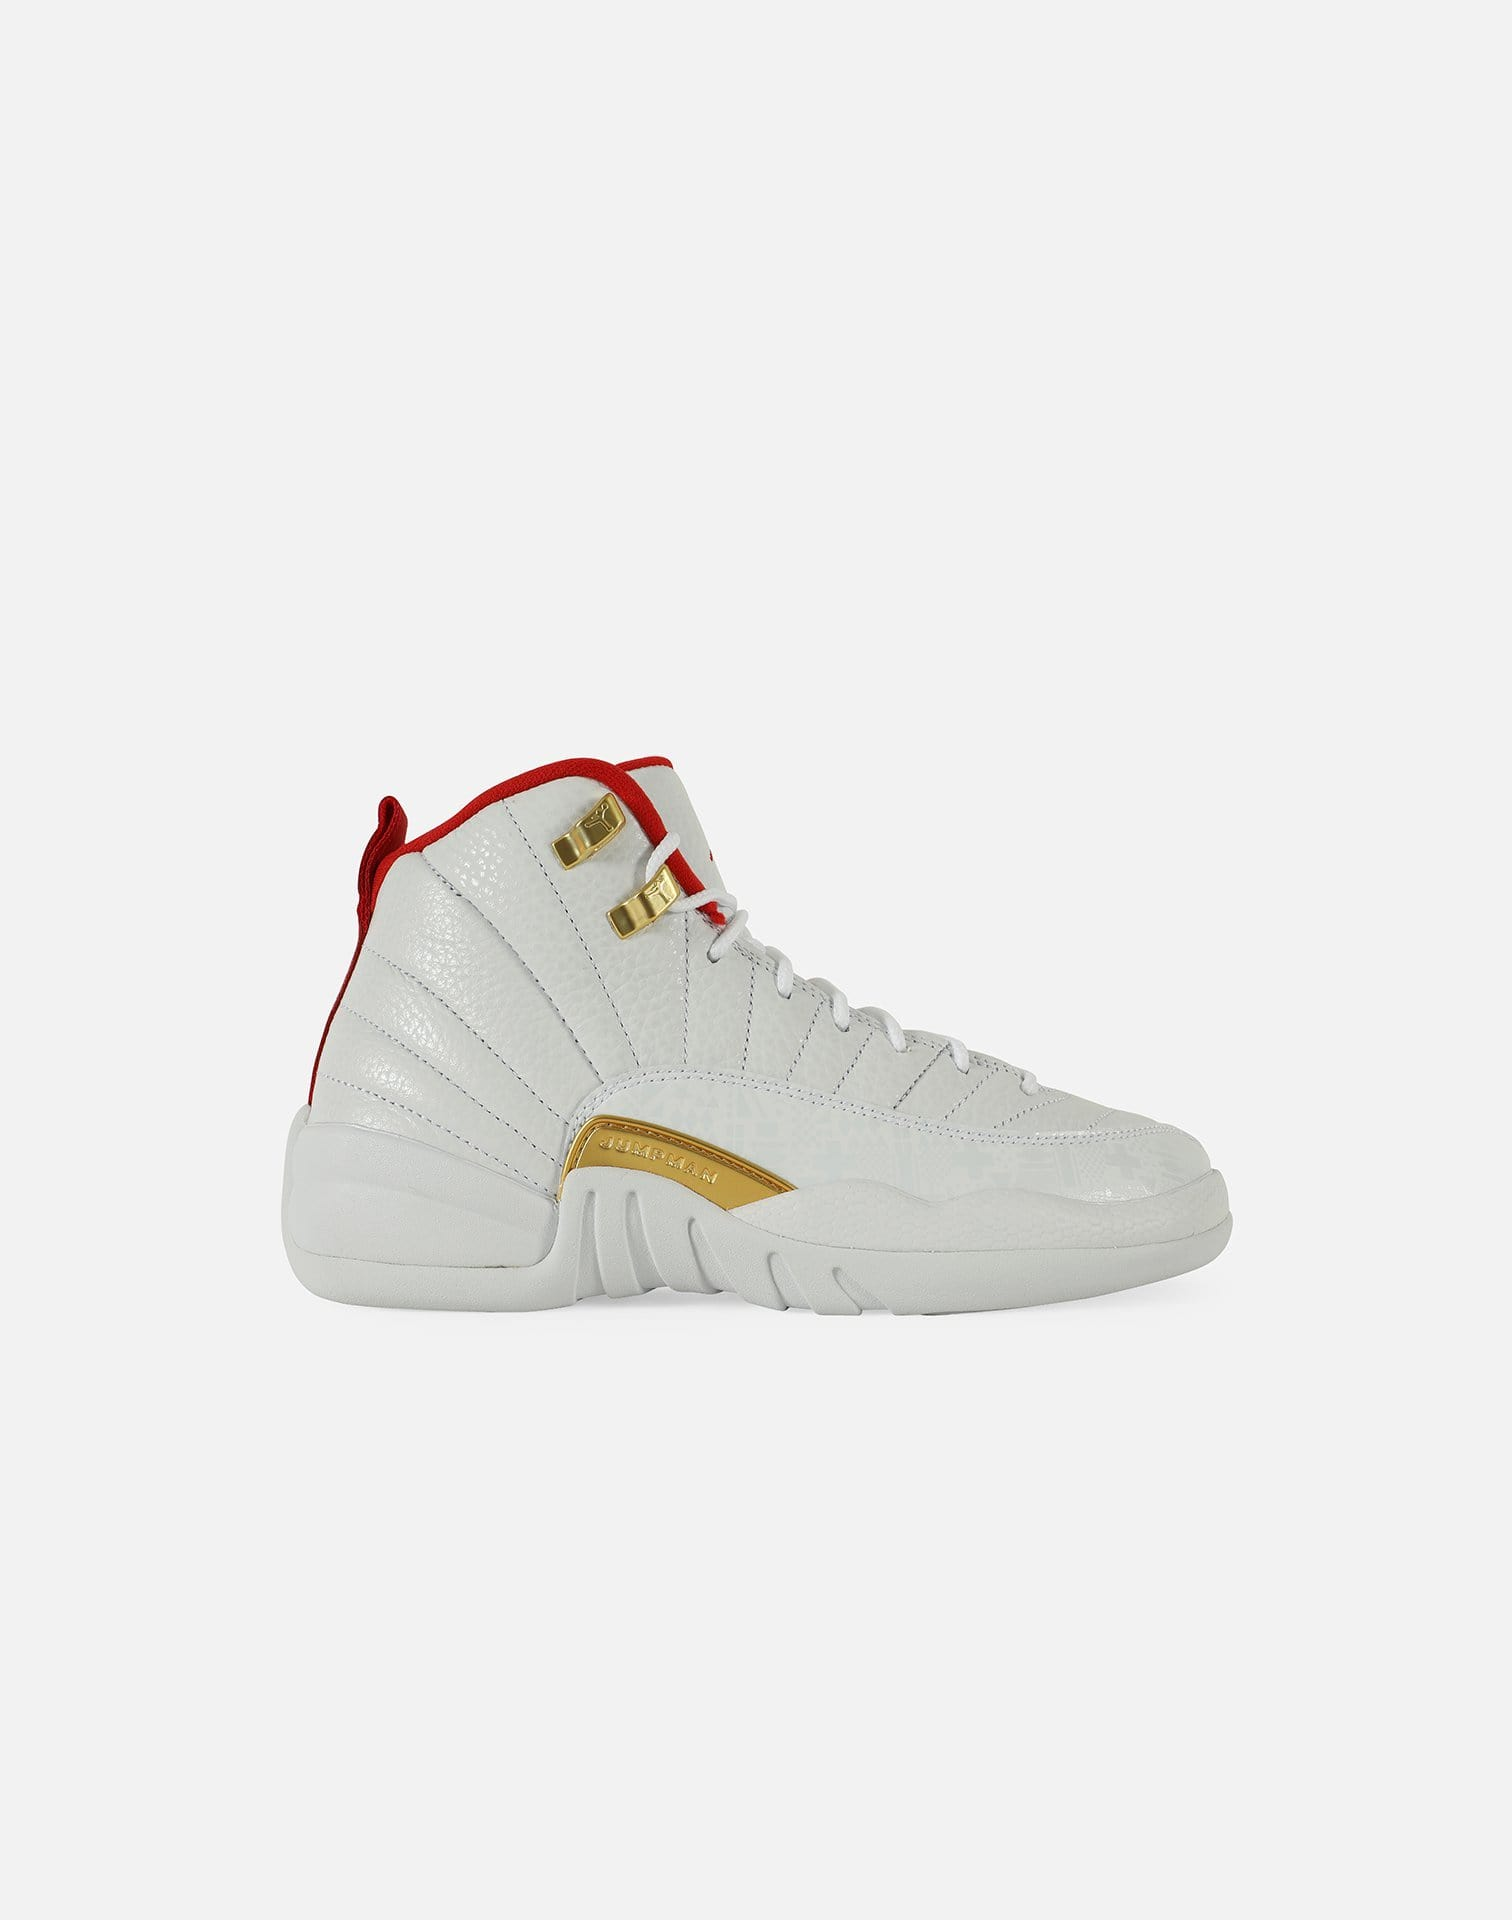 Jordan Air Jordan Retro 12 'FIBA' Grade-School